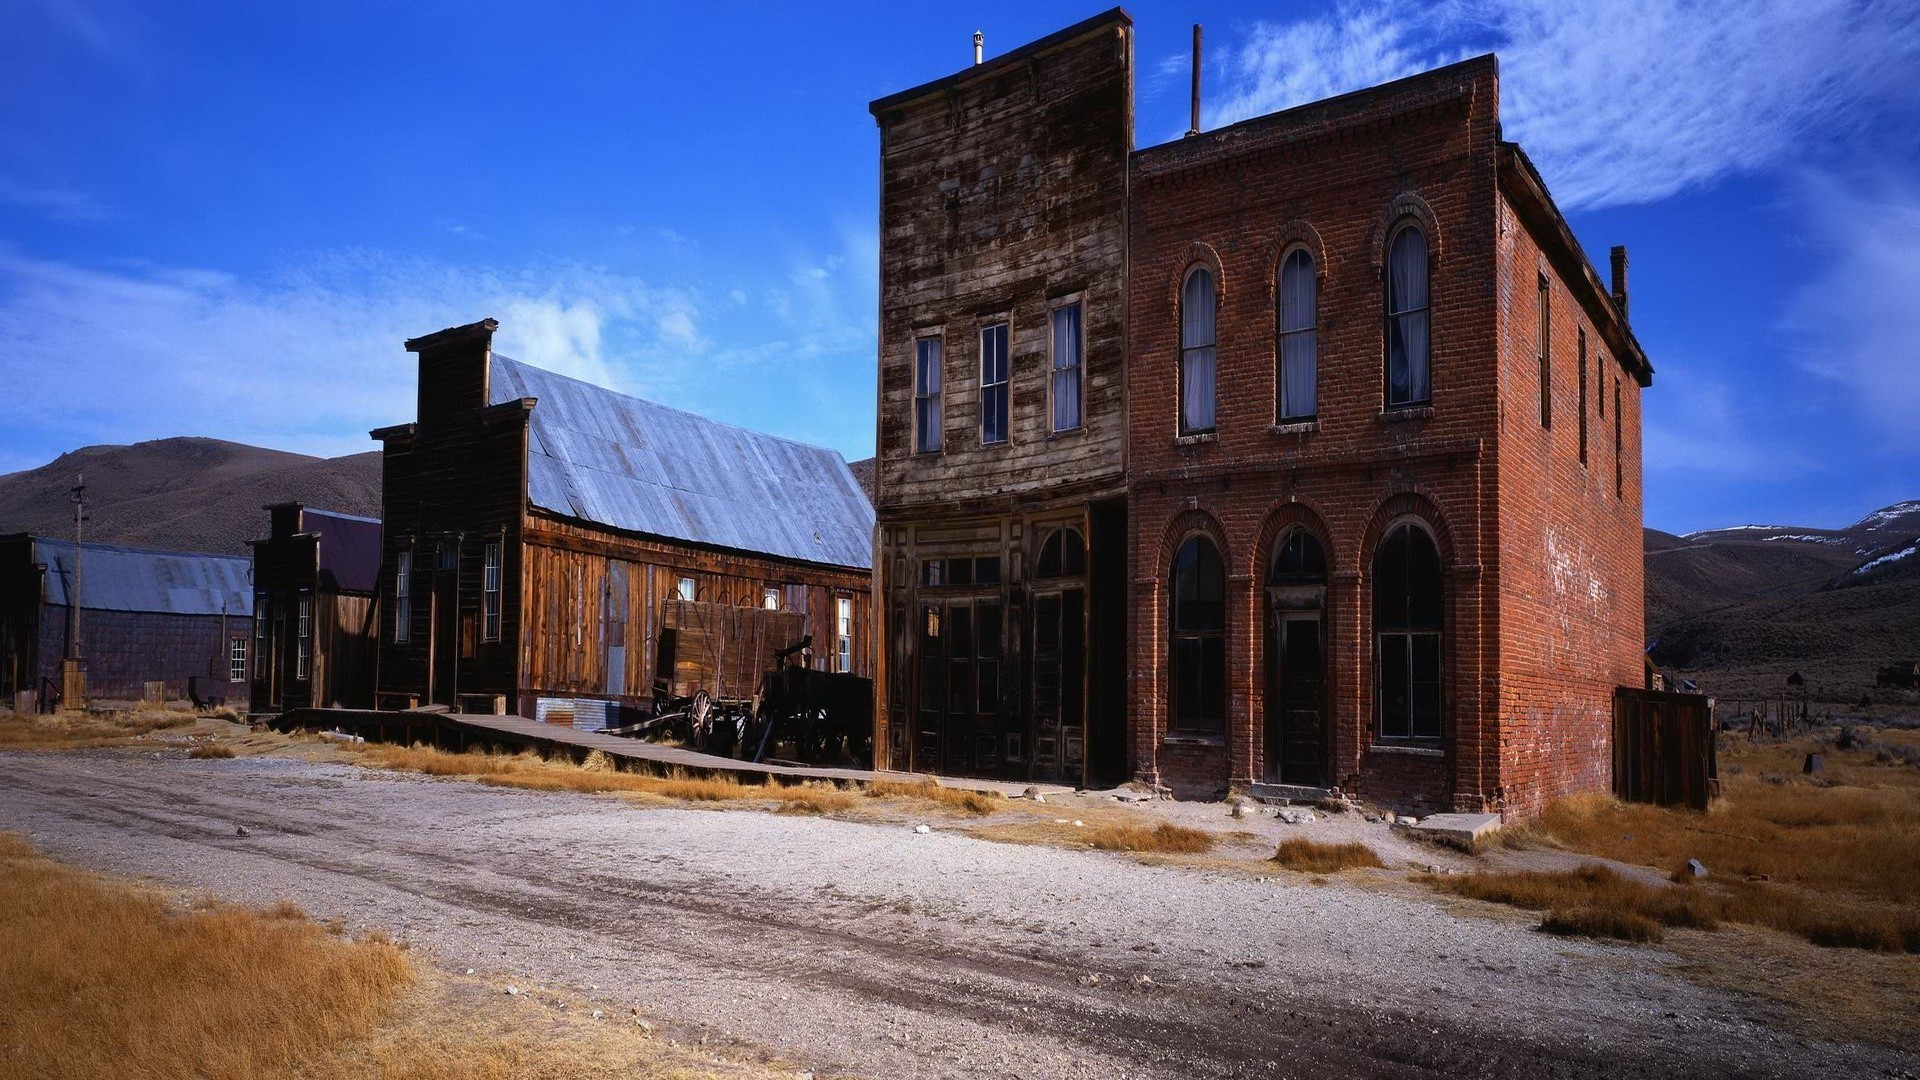 abandoned western town hd background cool images amazing hd apple background  wallpapers windows colourfull free lovely